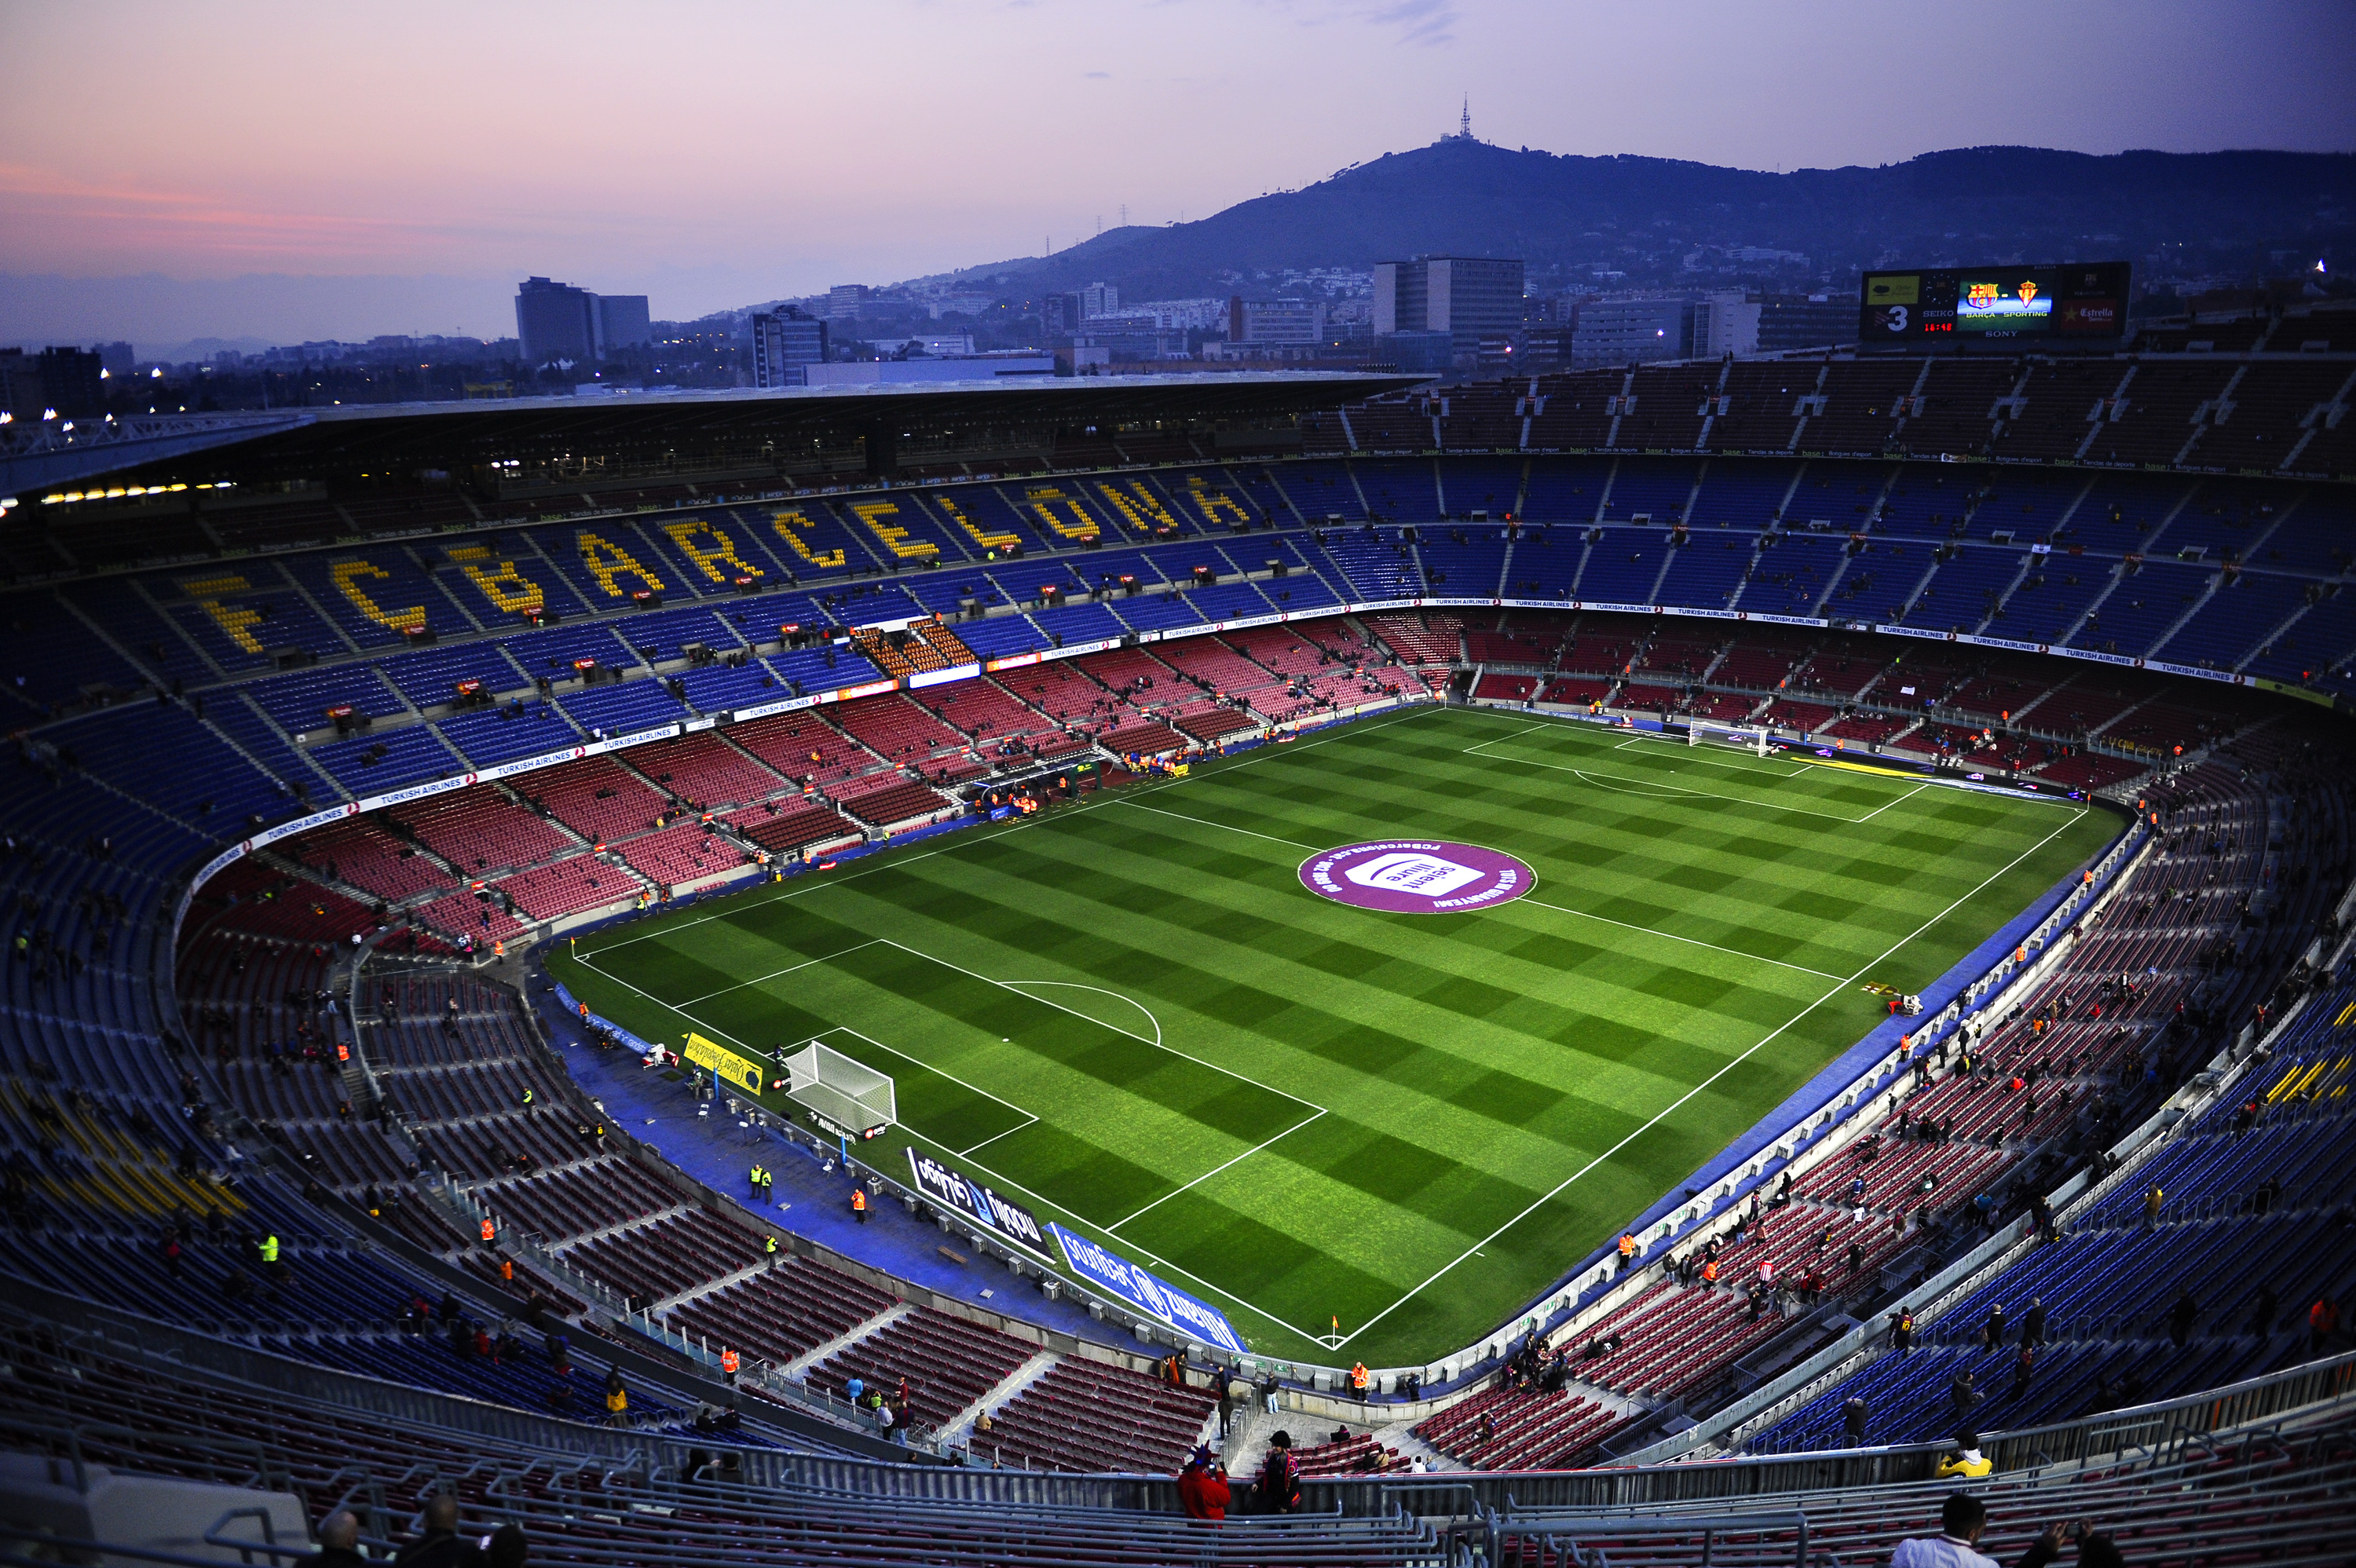 camp-nou-camp-nou-stadium-in-barcelona-evening-field-football